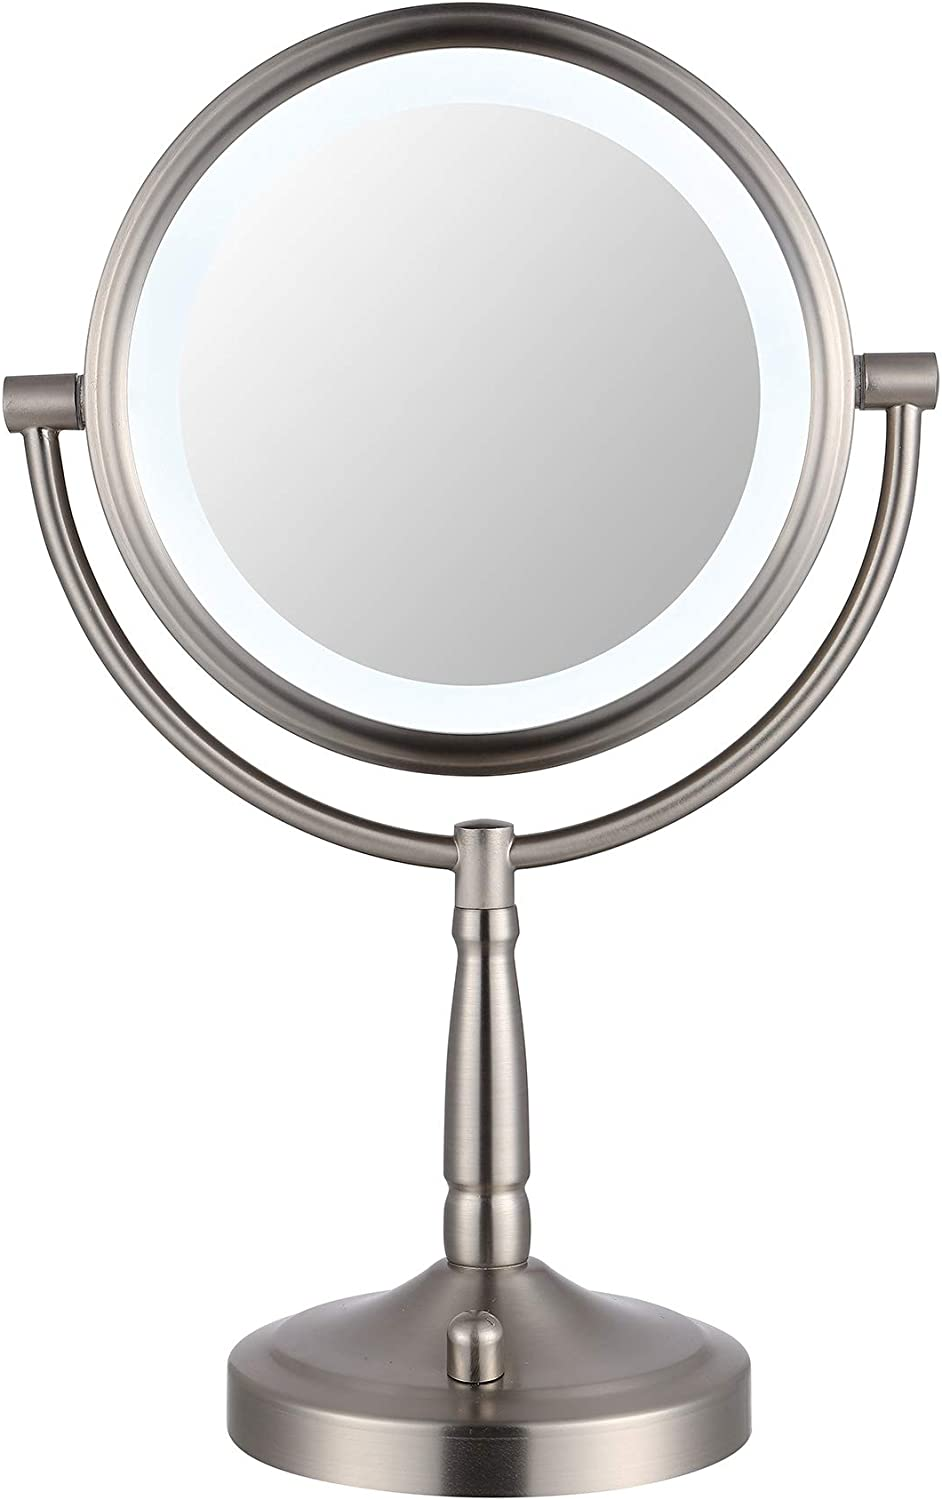 Bonverre Plug in Double Sided LED Lighted 8X All Super popular specialty store stores are sold Mirror Makeup with